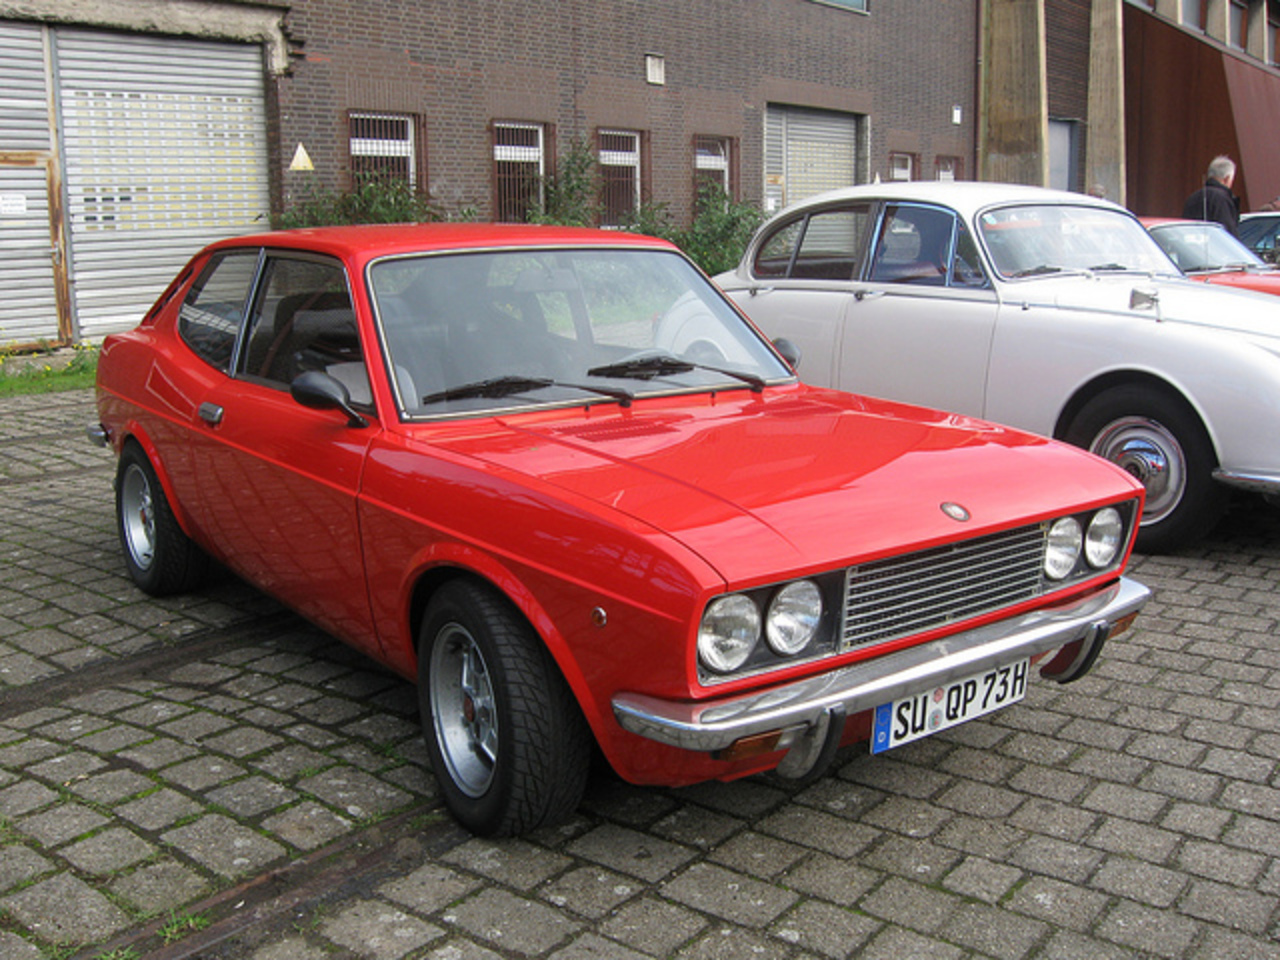 Fiat 128 Coupe 1973 | Flickr - Photo Sharing!